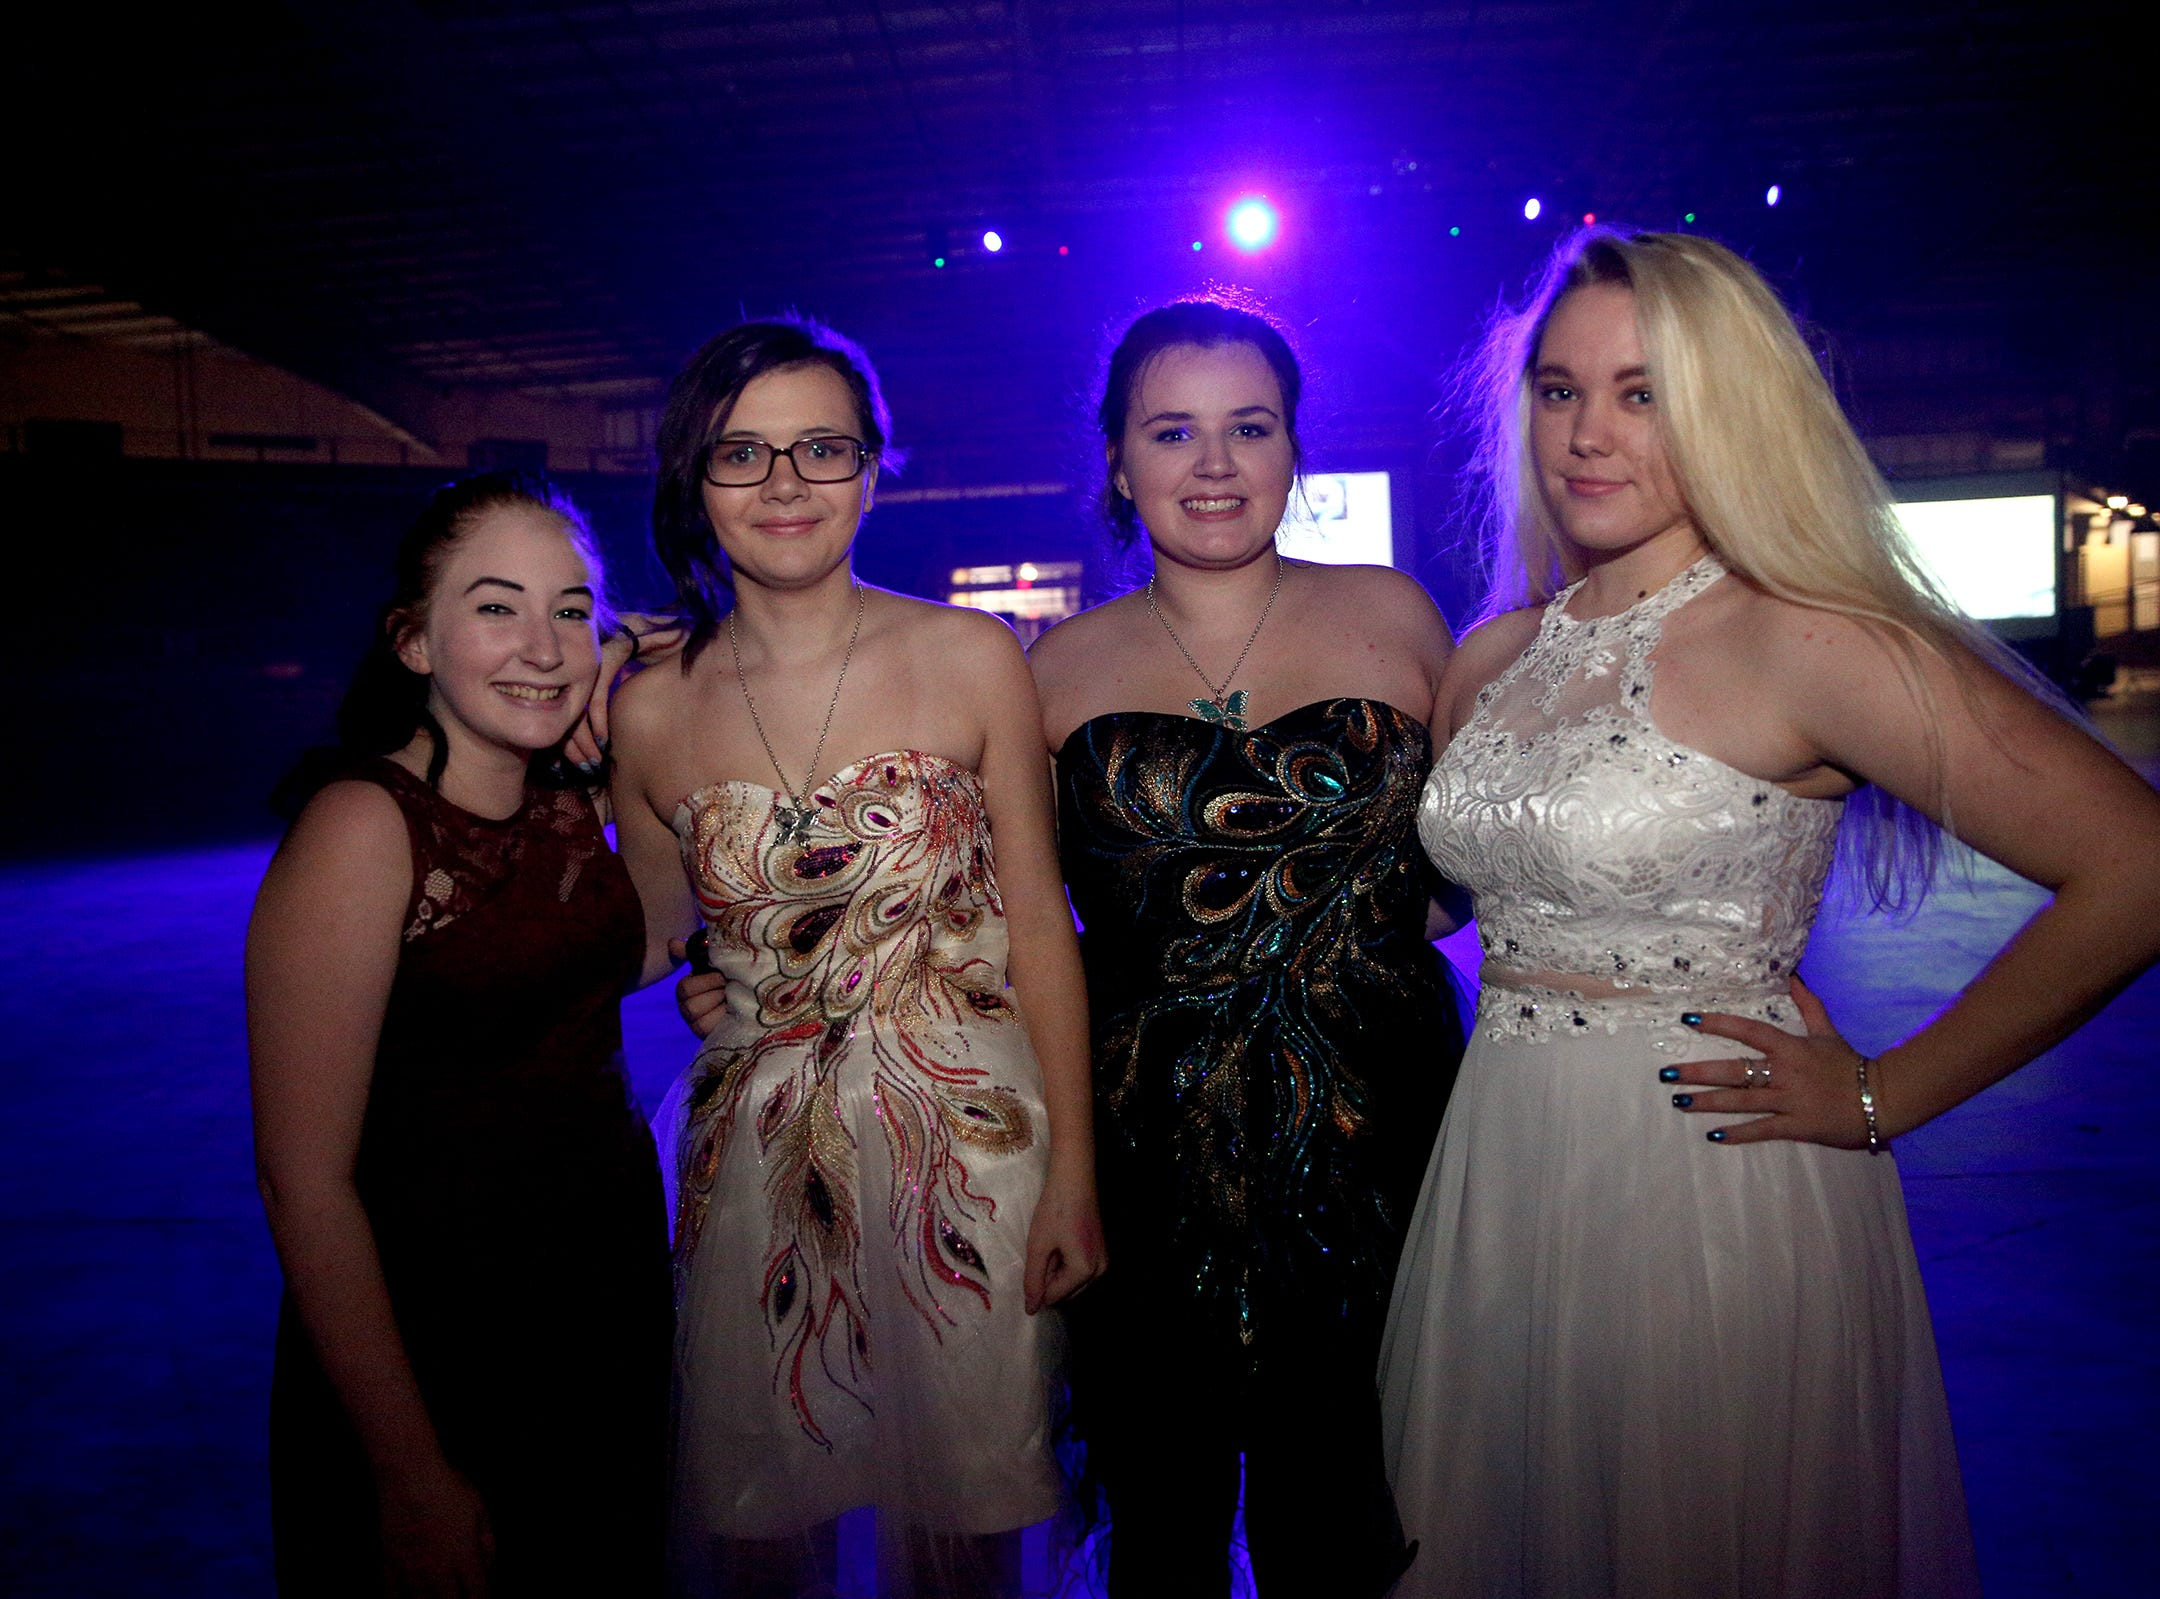 Students (from left to right), North Salem sophomore Elyza Hall, Connections Academy sophomore Angellina Moore, South Salem sophomore Brittney Withrow and North Salem sophomore Hannah Oneill pose for a photo before the annual SnoBall at the Oregon State Fairgrounds Pavilion in Salem on Saturday, Dec. 1, 2018.